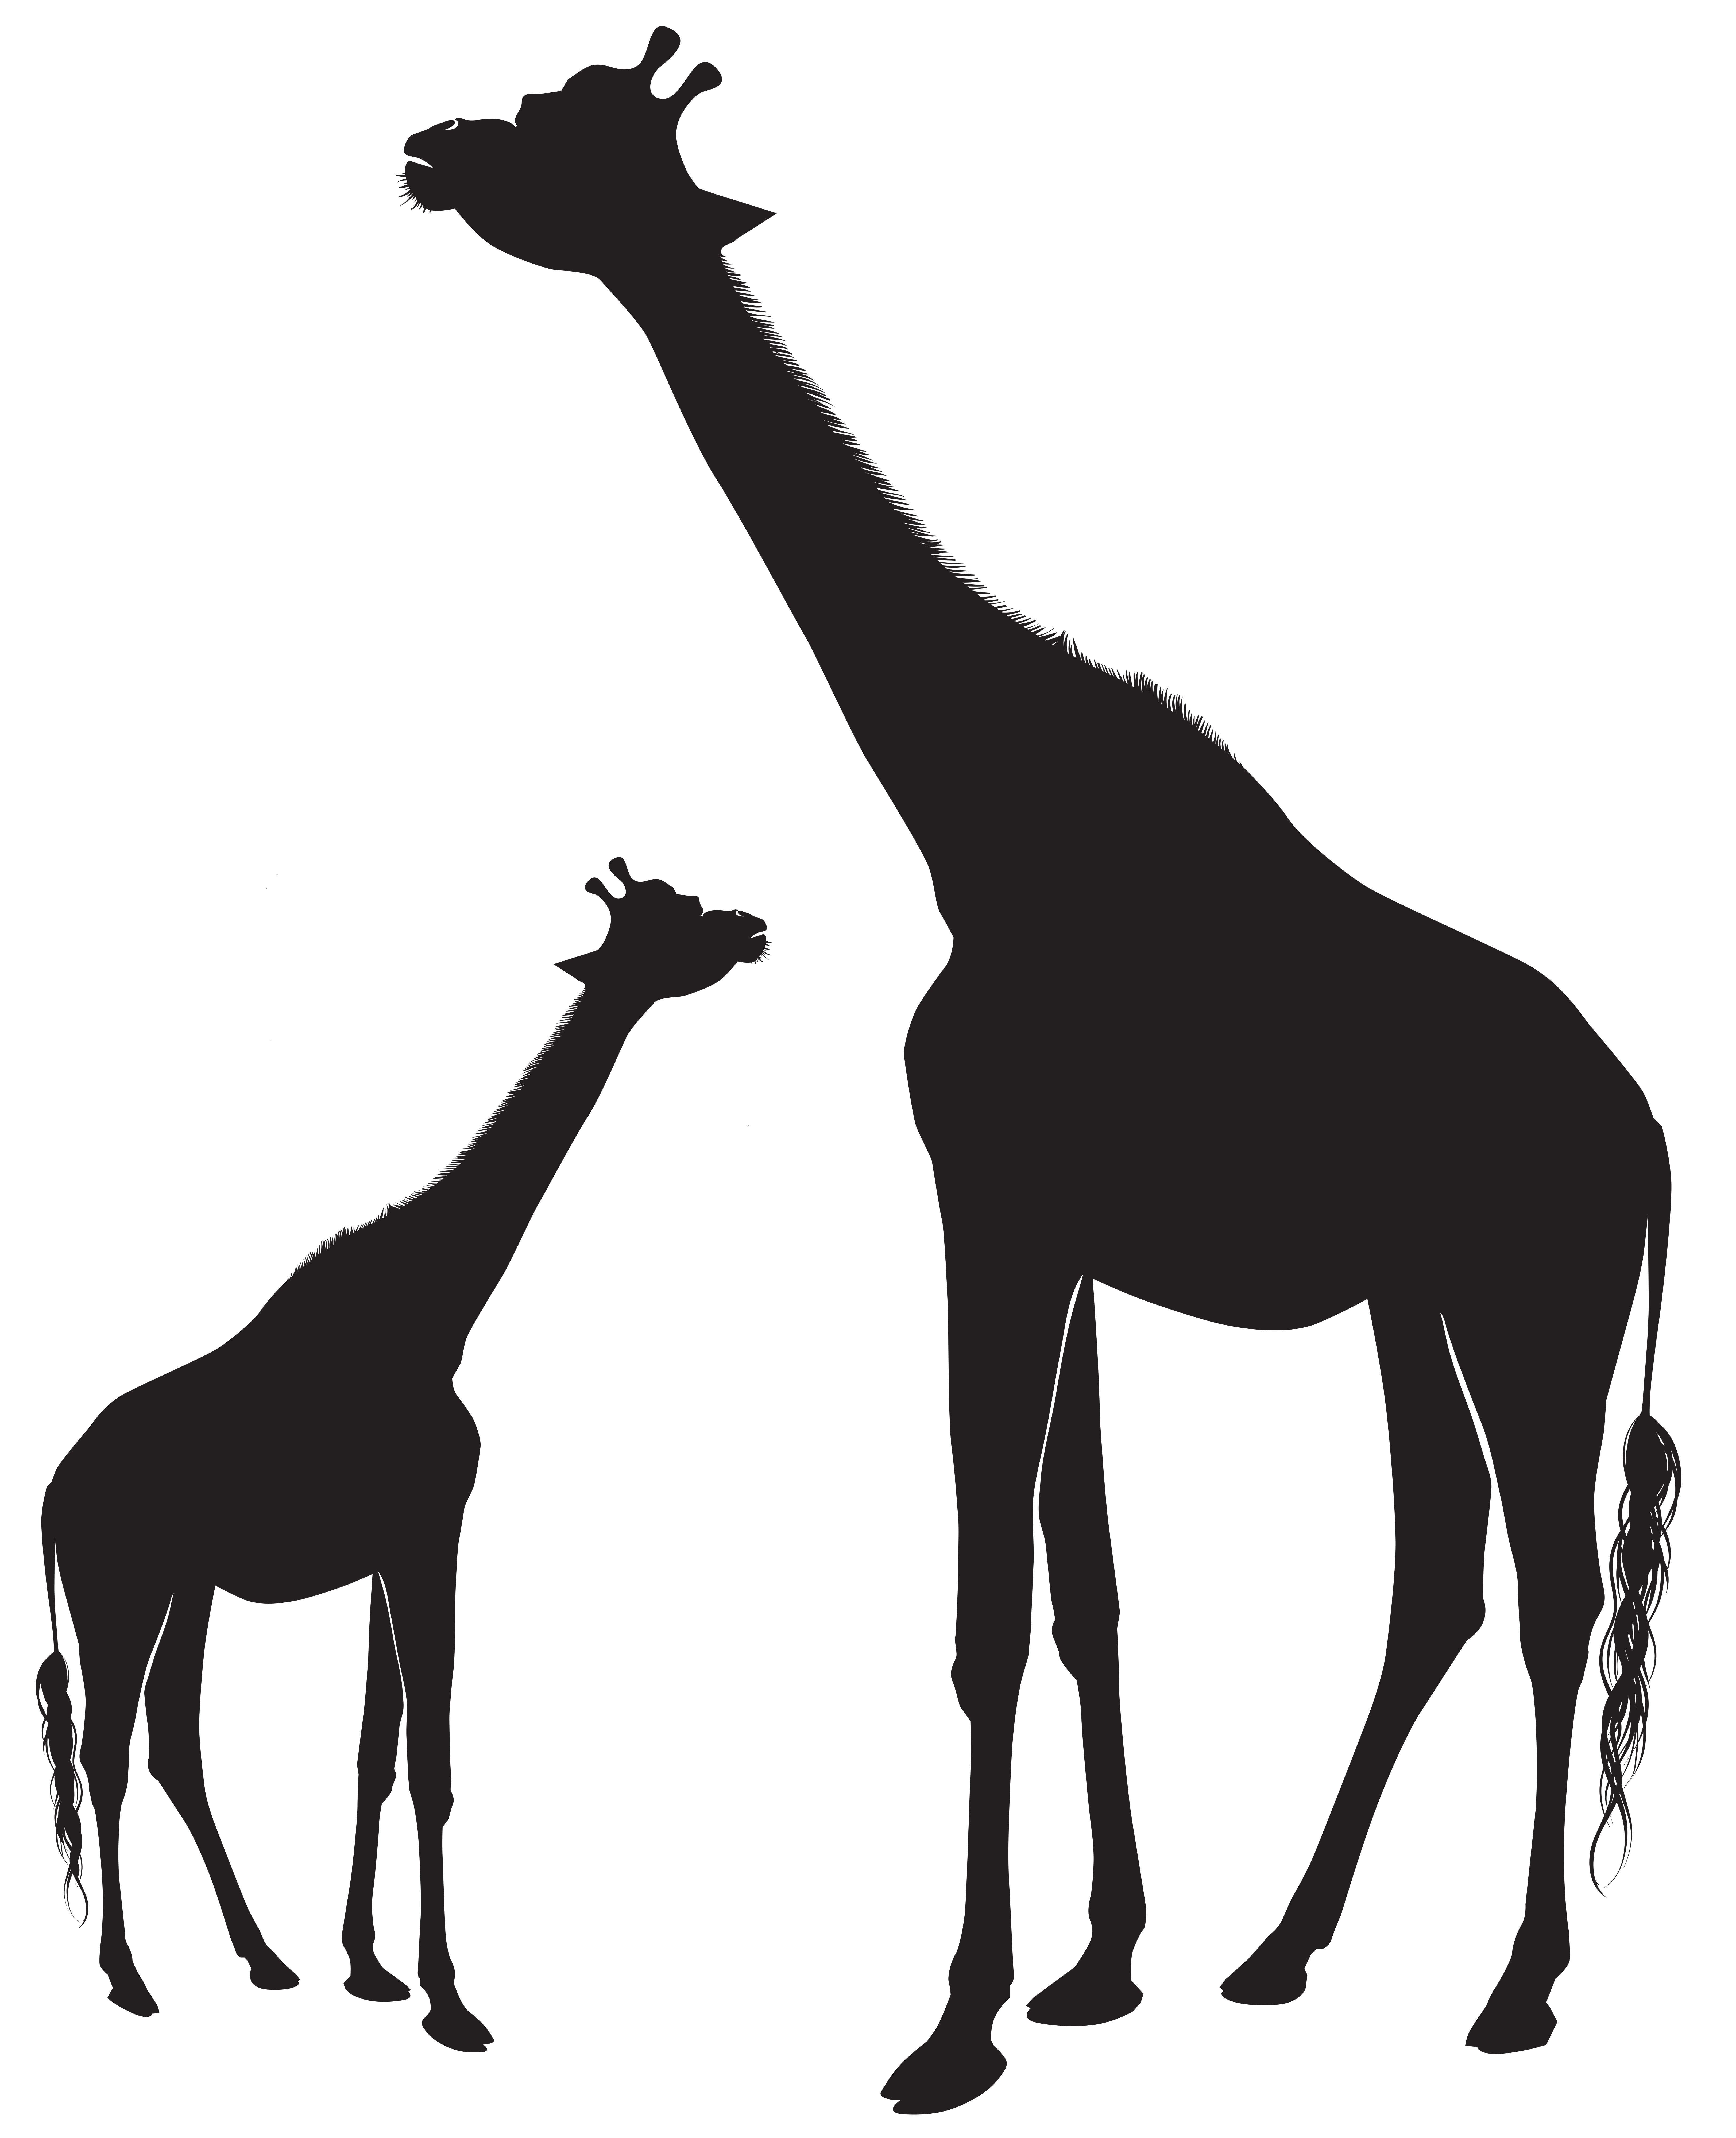 Giraffes Silhouette Png Clip Art Image Gallery